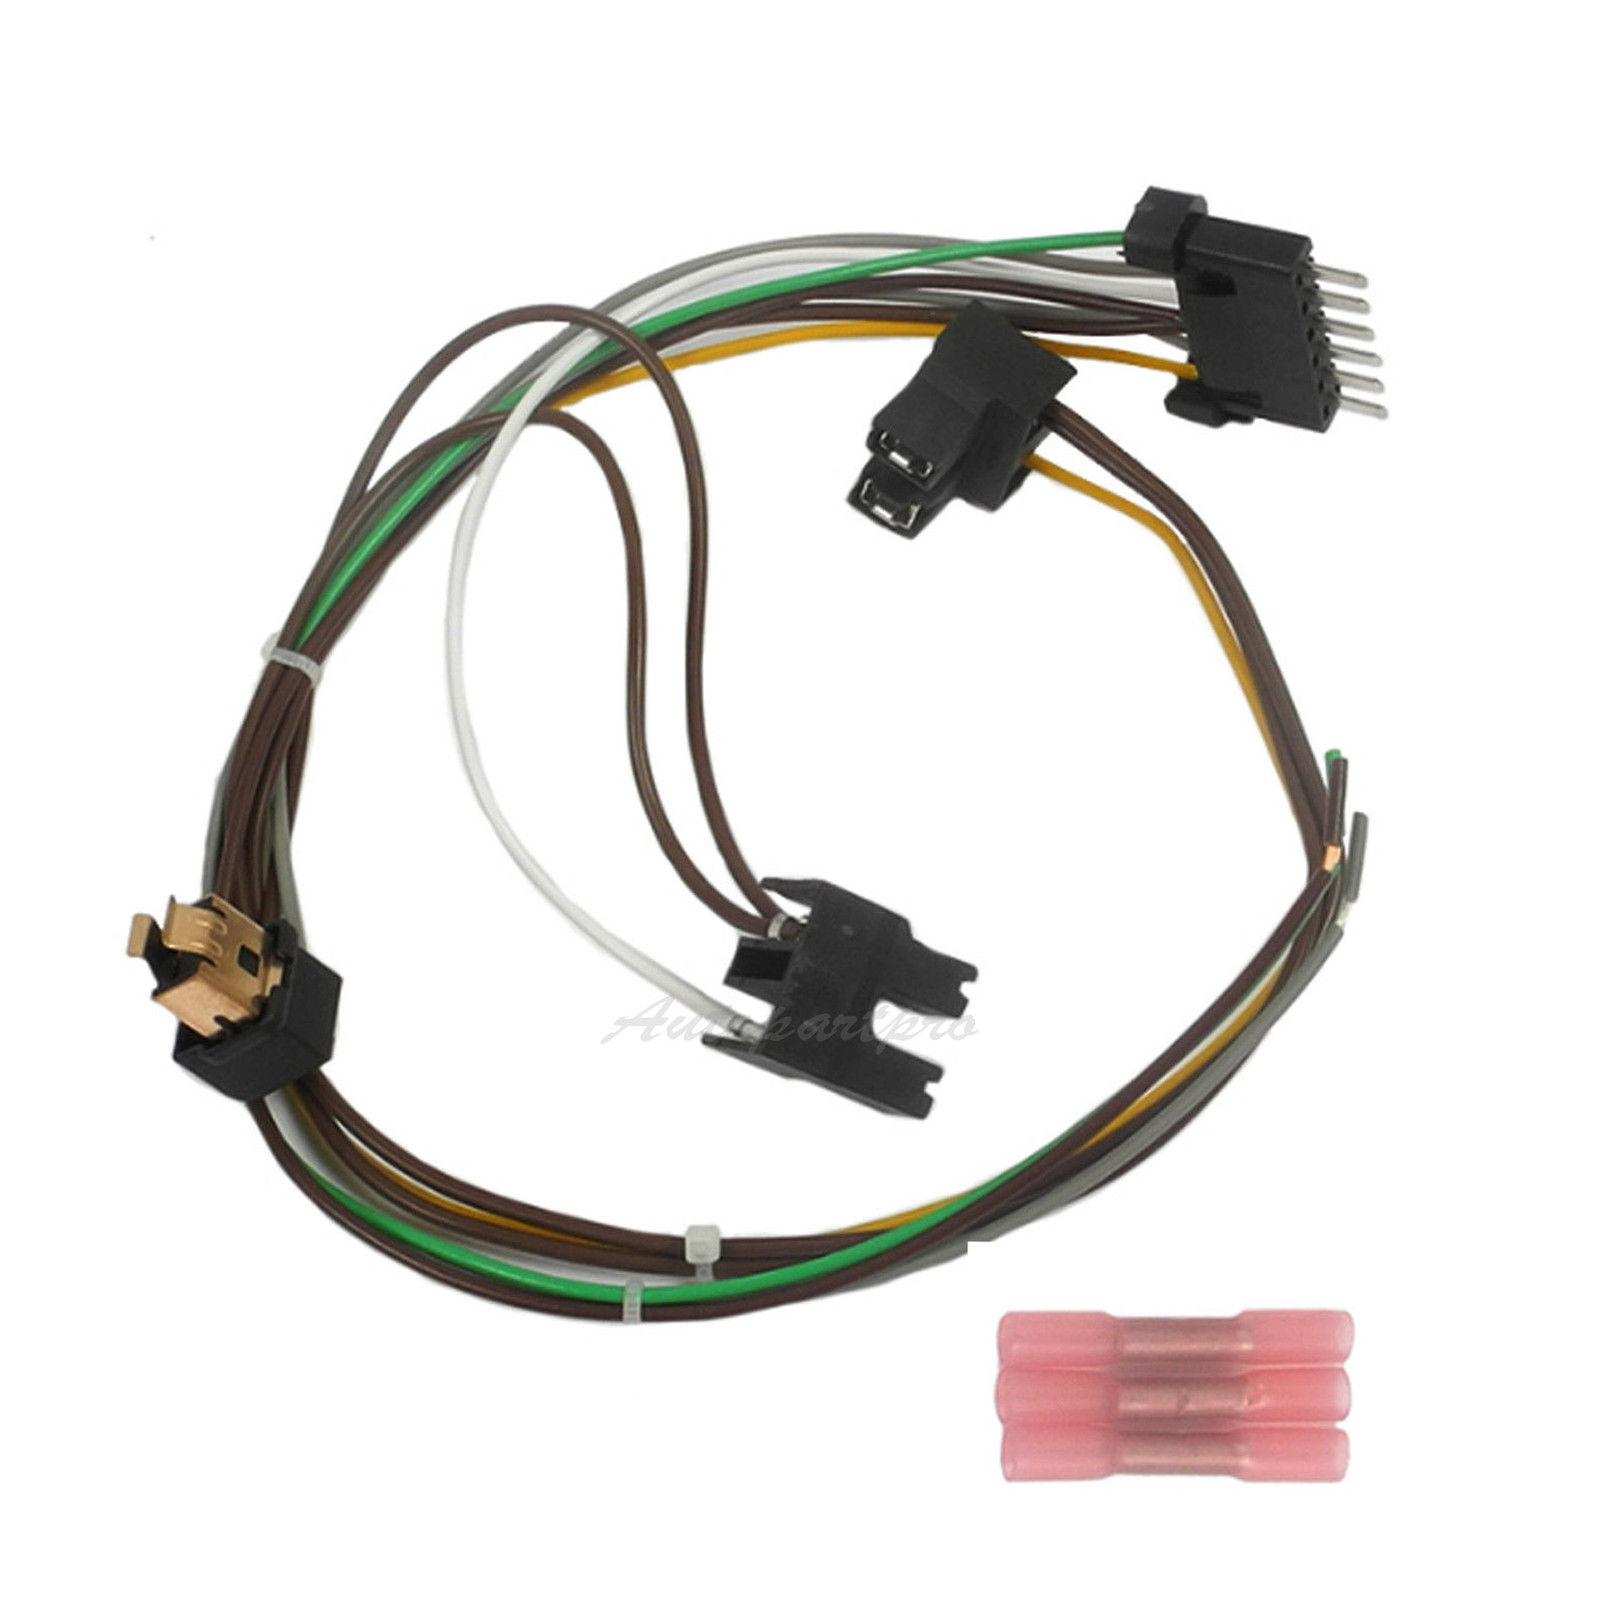 Details about D124L Headlight Wiring Harness Repair Kit Left LH For on